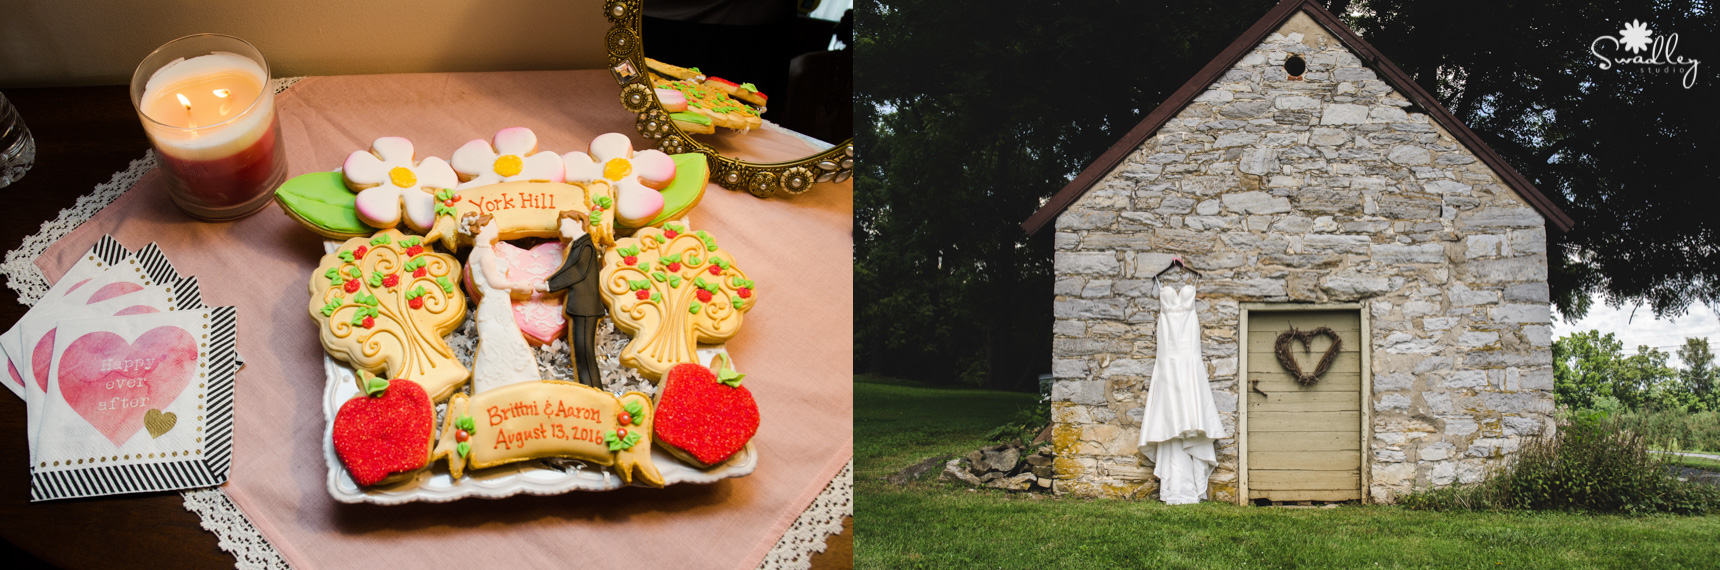 wv-barn-at-york-hill-wedding-photographers-swadley-studio-getting-ready-collage-2